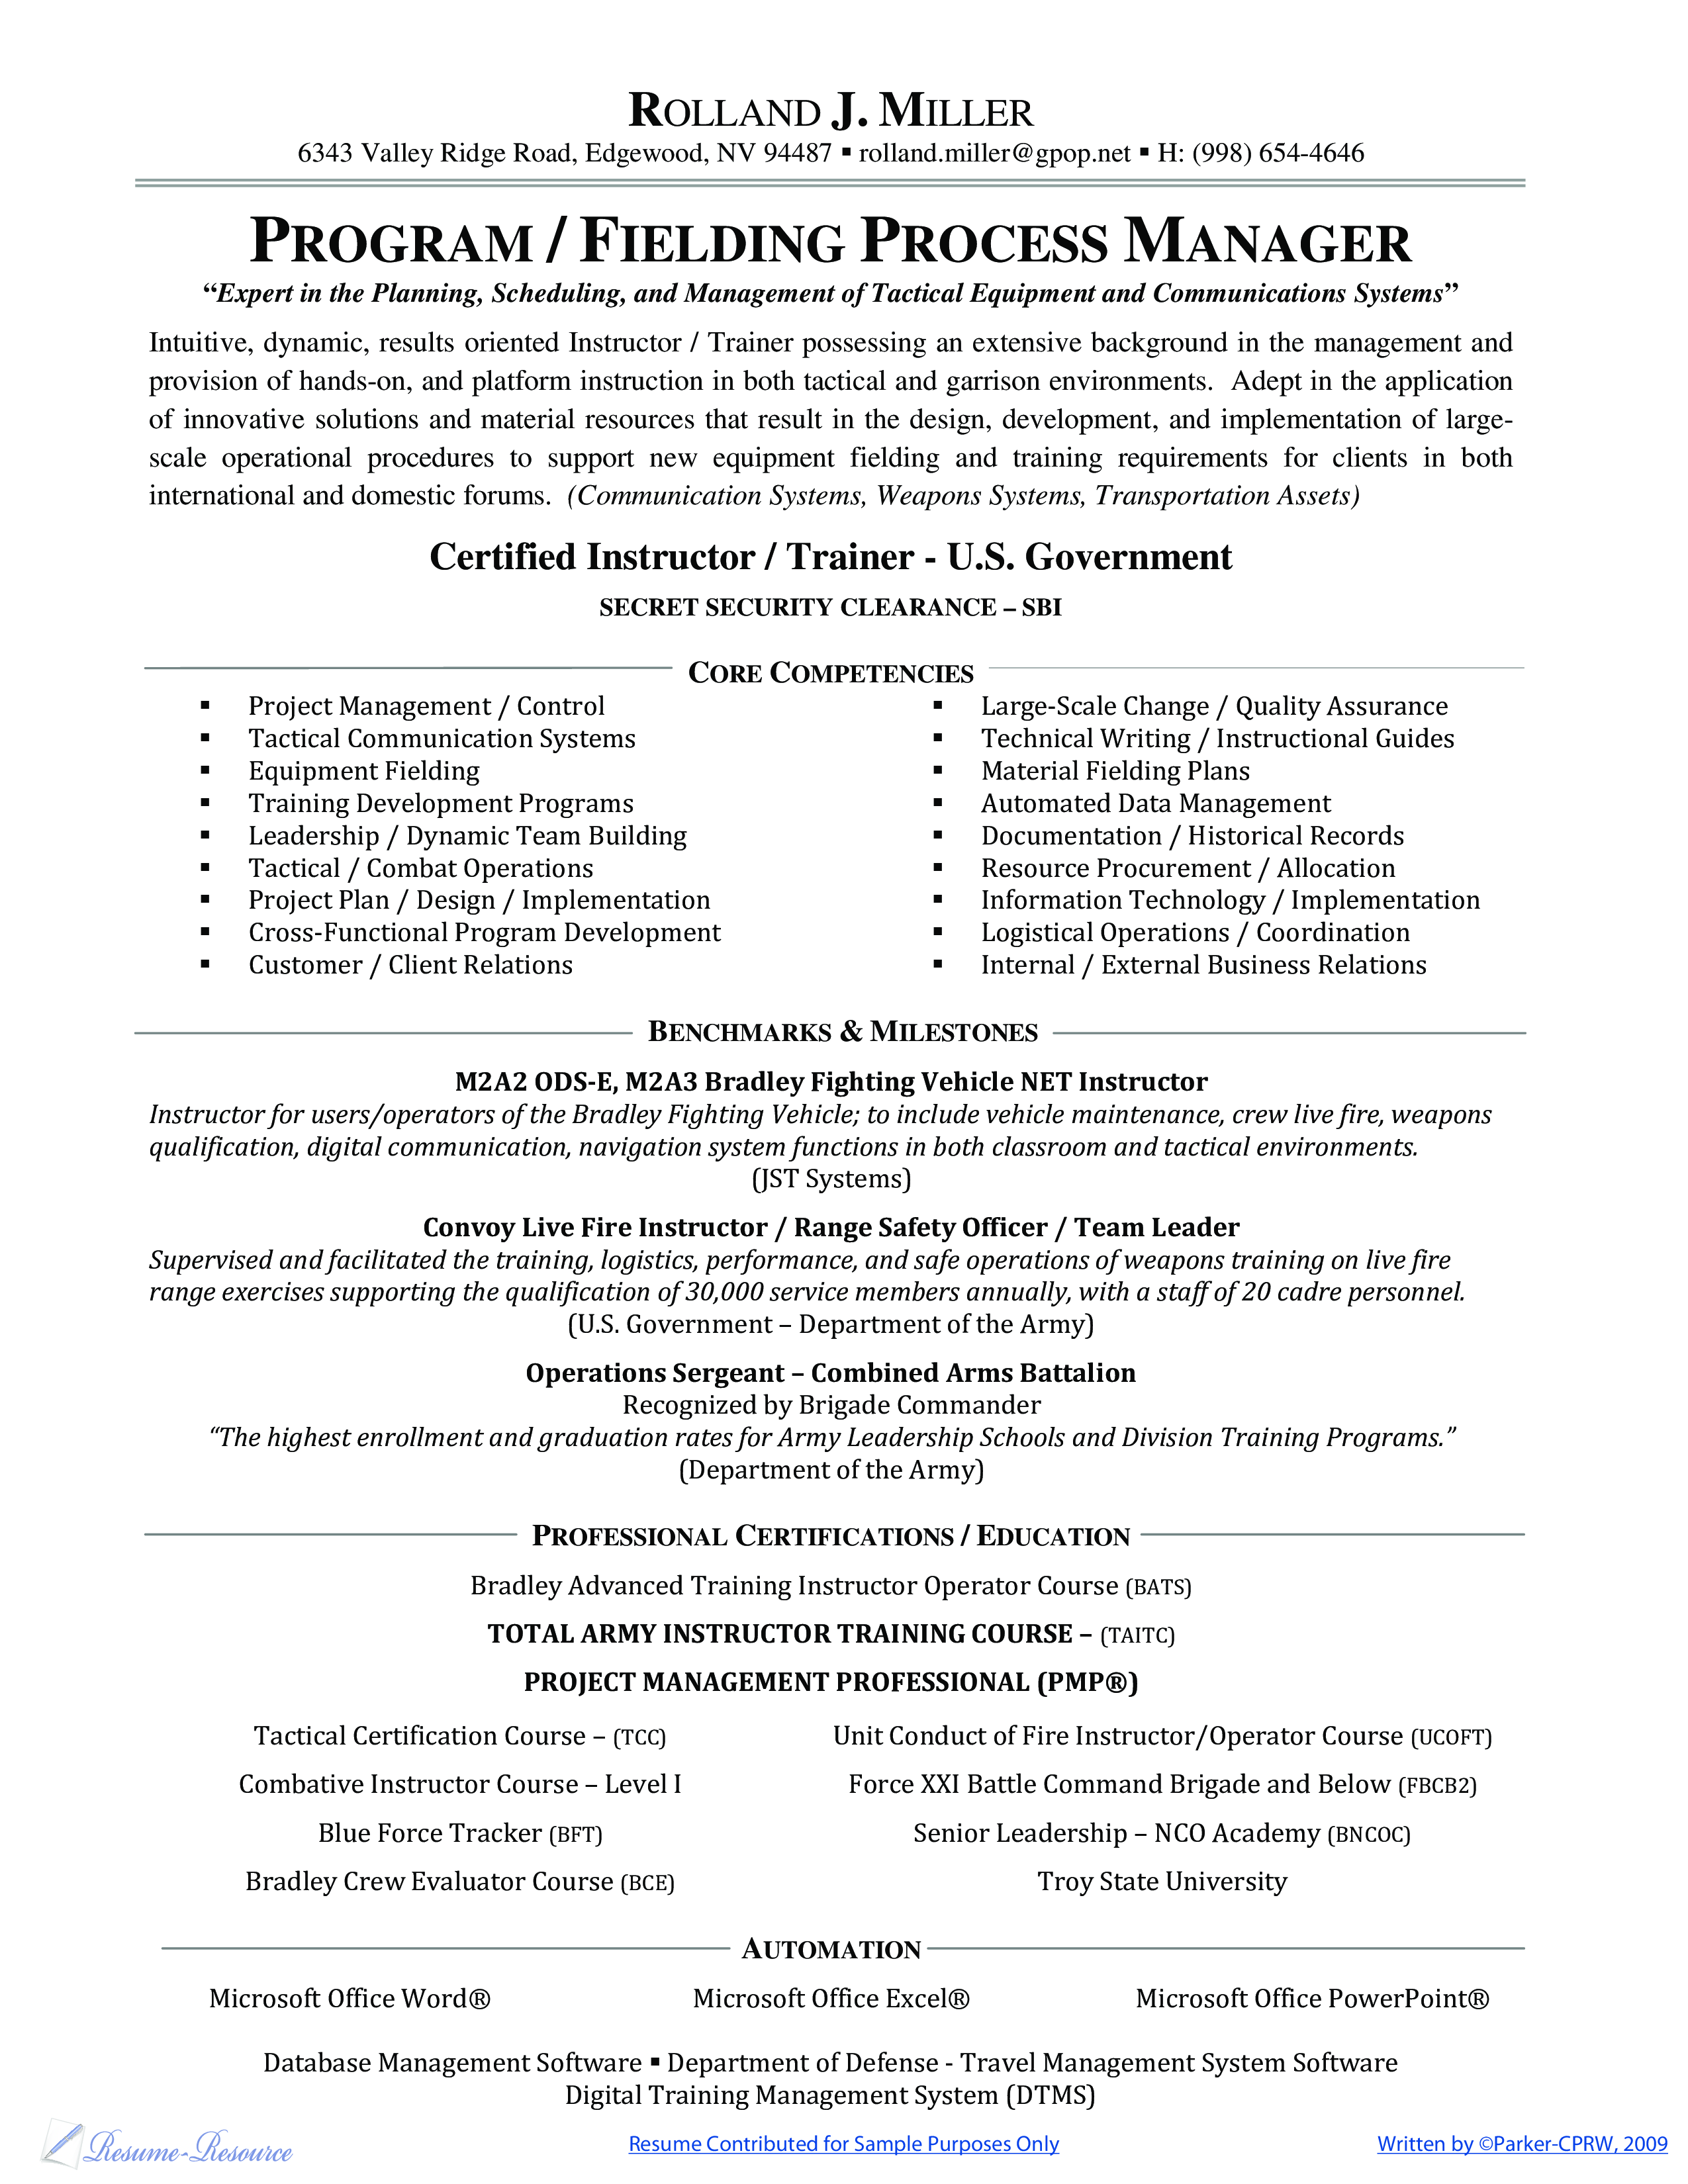 Free Process Manager Resume | Templates at allbusinesstemplates.com